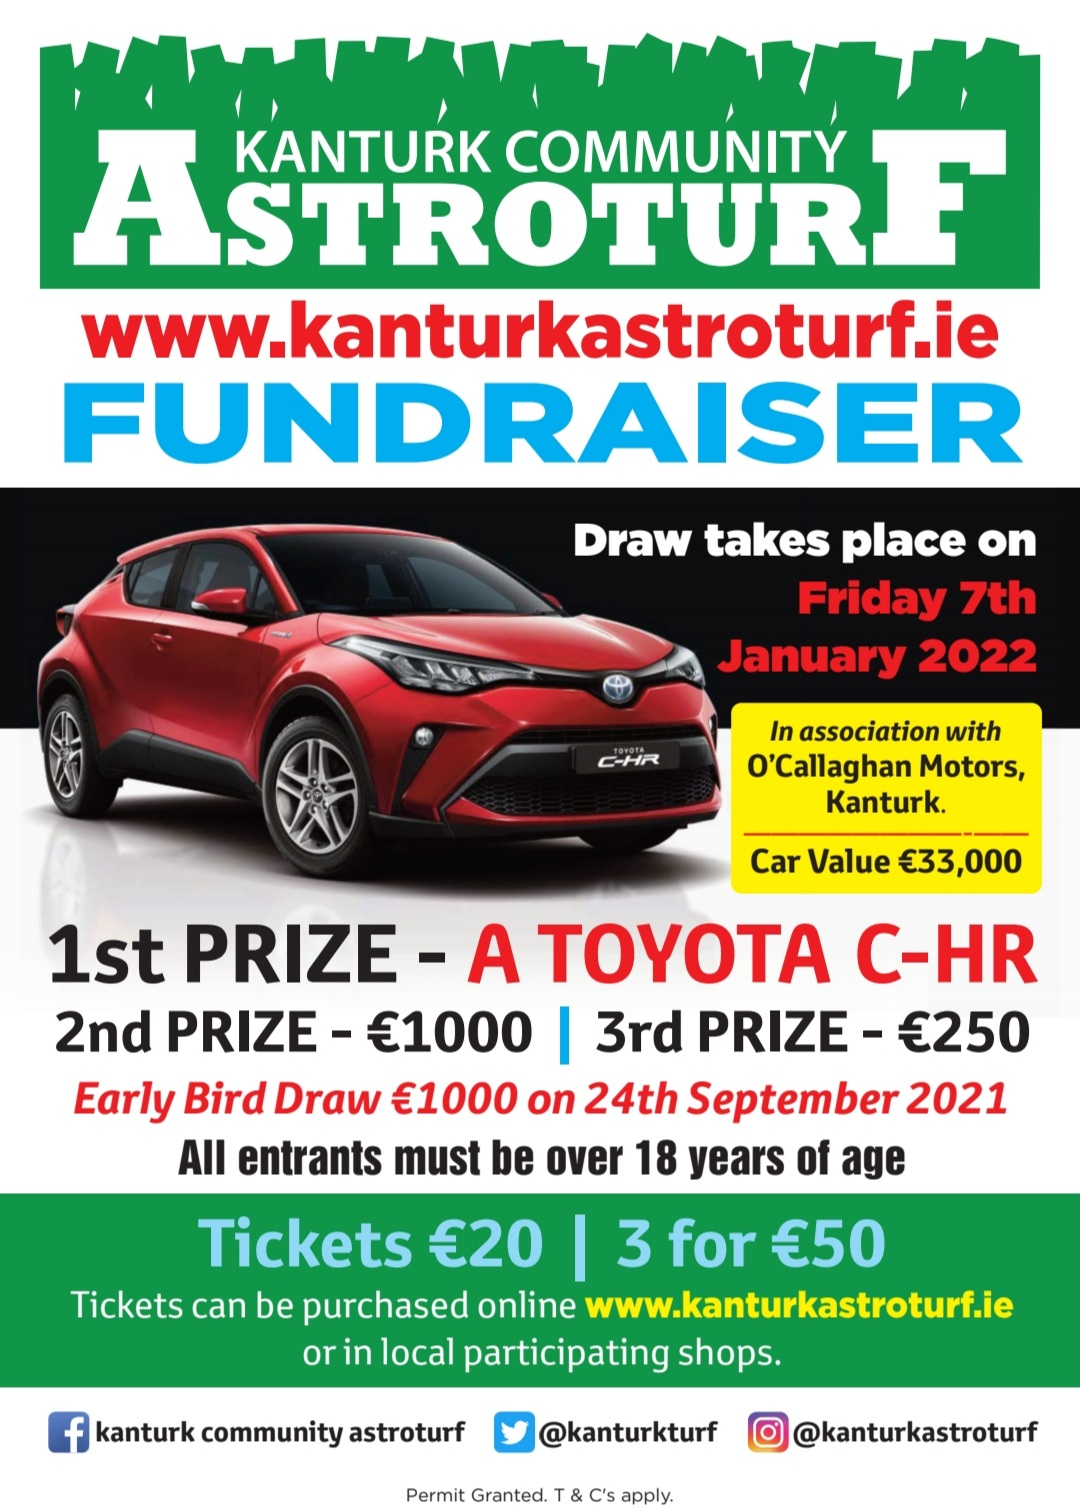 Fundraiser Launched to Deliver New Astroturf for Kanturk